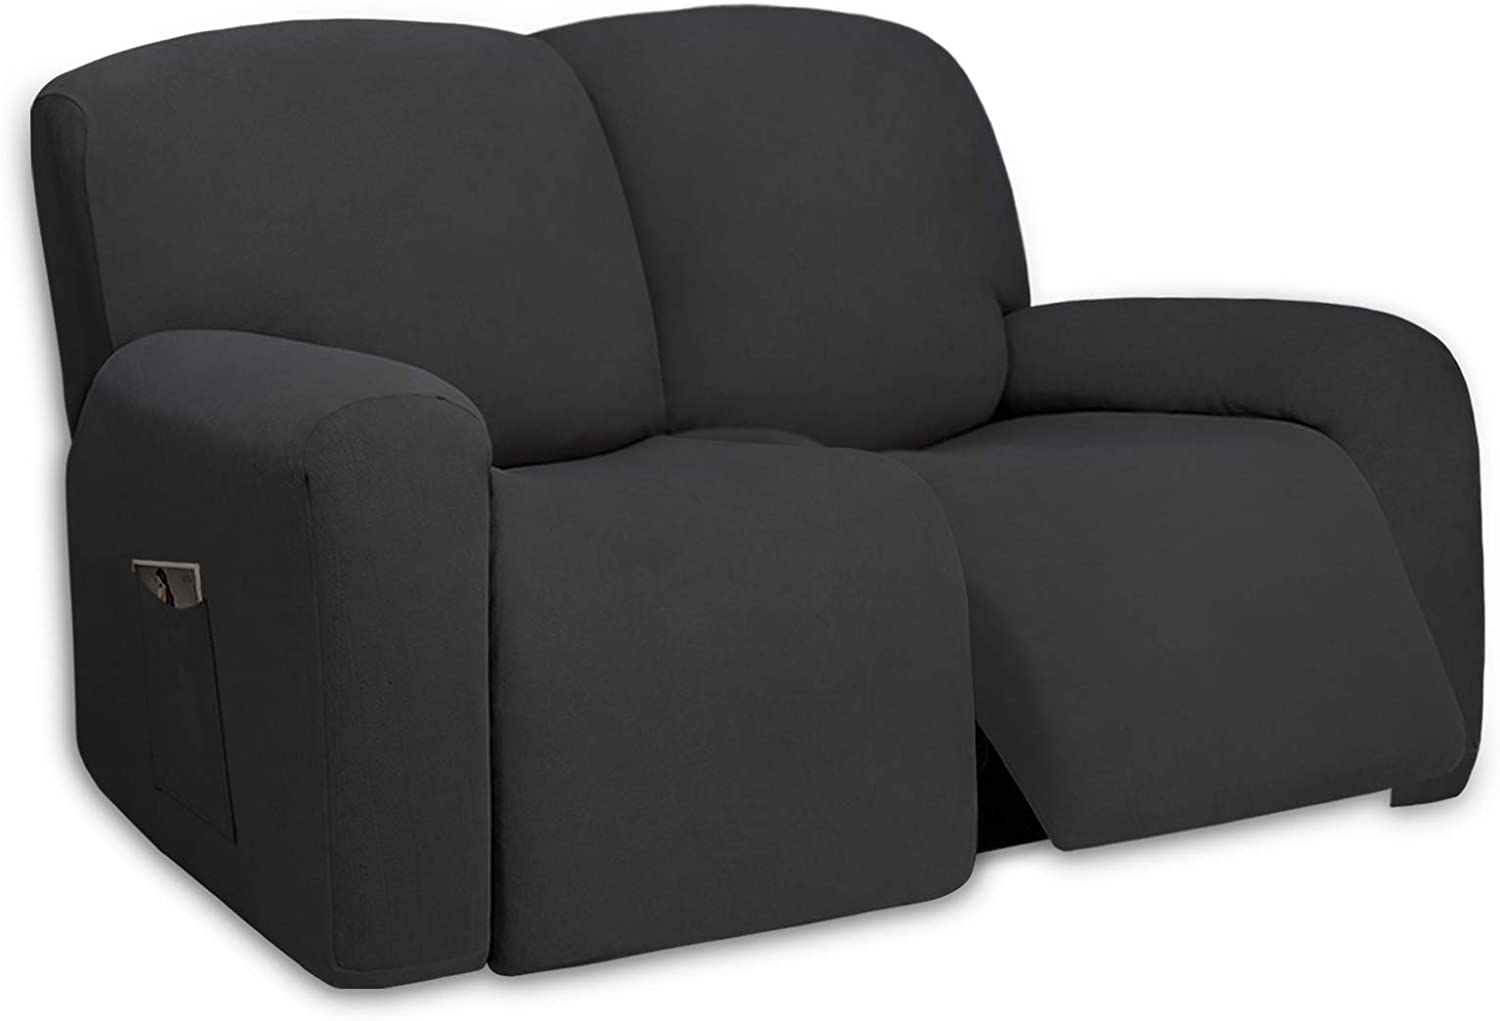 PureFit Super Stretch Loveseat Recliner Sofa Couch Cover with Pocket – 2 Seats Lazy Boy Non Slip Soft Sofa Slipcover, Washable Reclining Furniture Protector for Kid,Pets (Recliner Loveseat,Dark Gray)